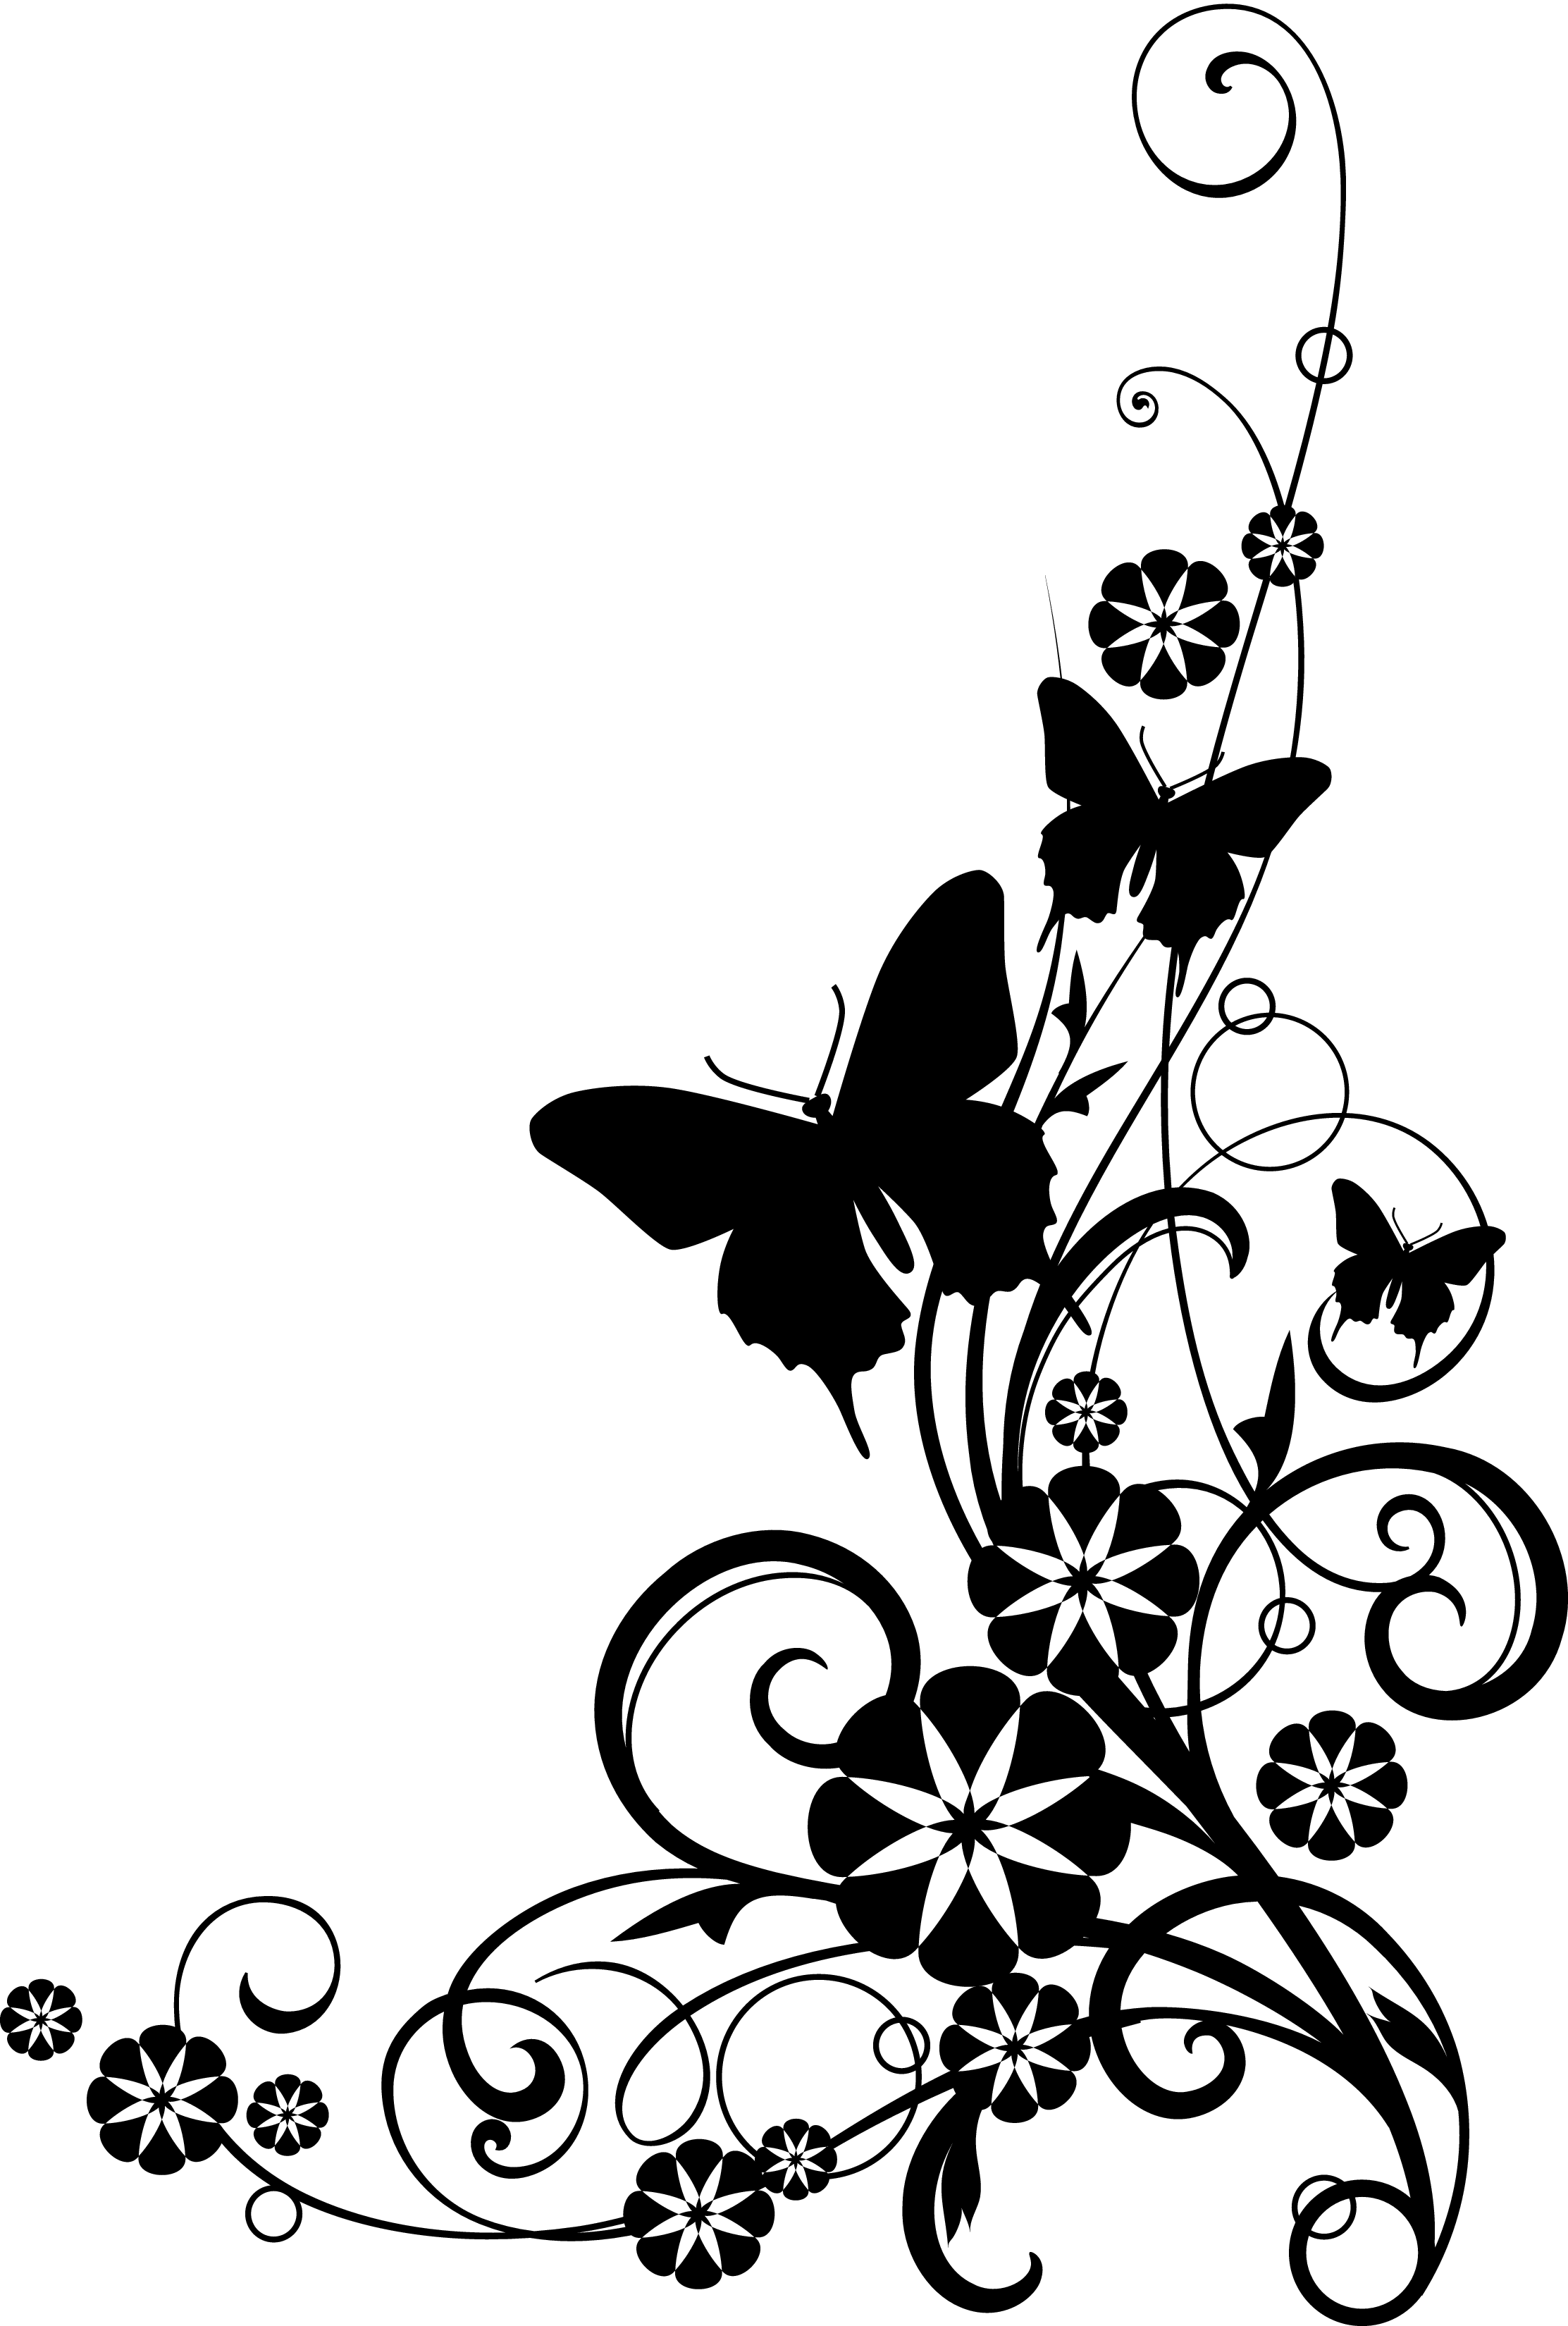 Line Art Vines : Vine black and white clipart suggest